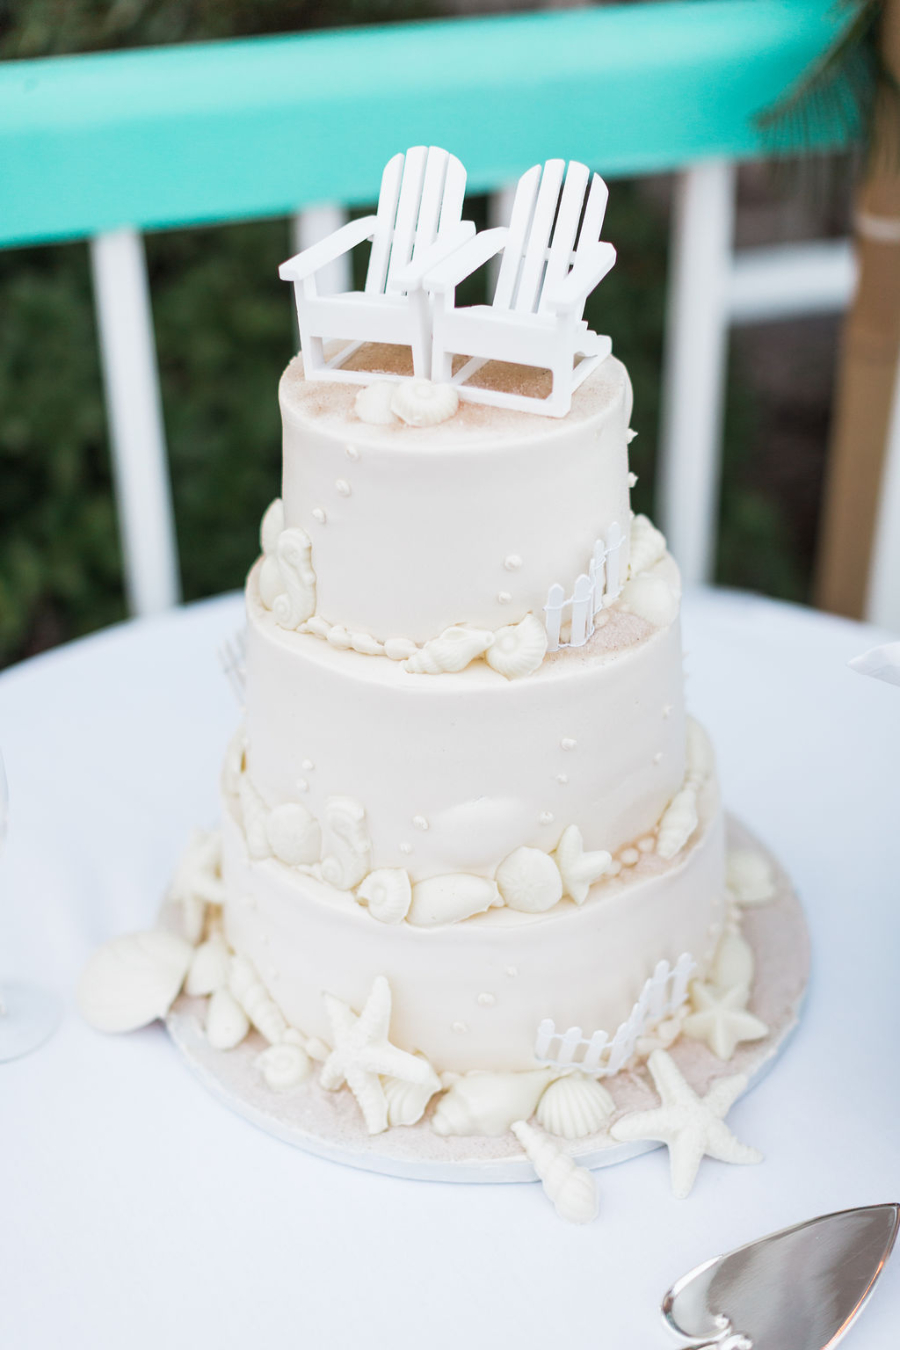 Beach wedding cake Image obtained via Flickr CC